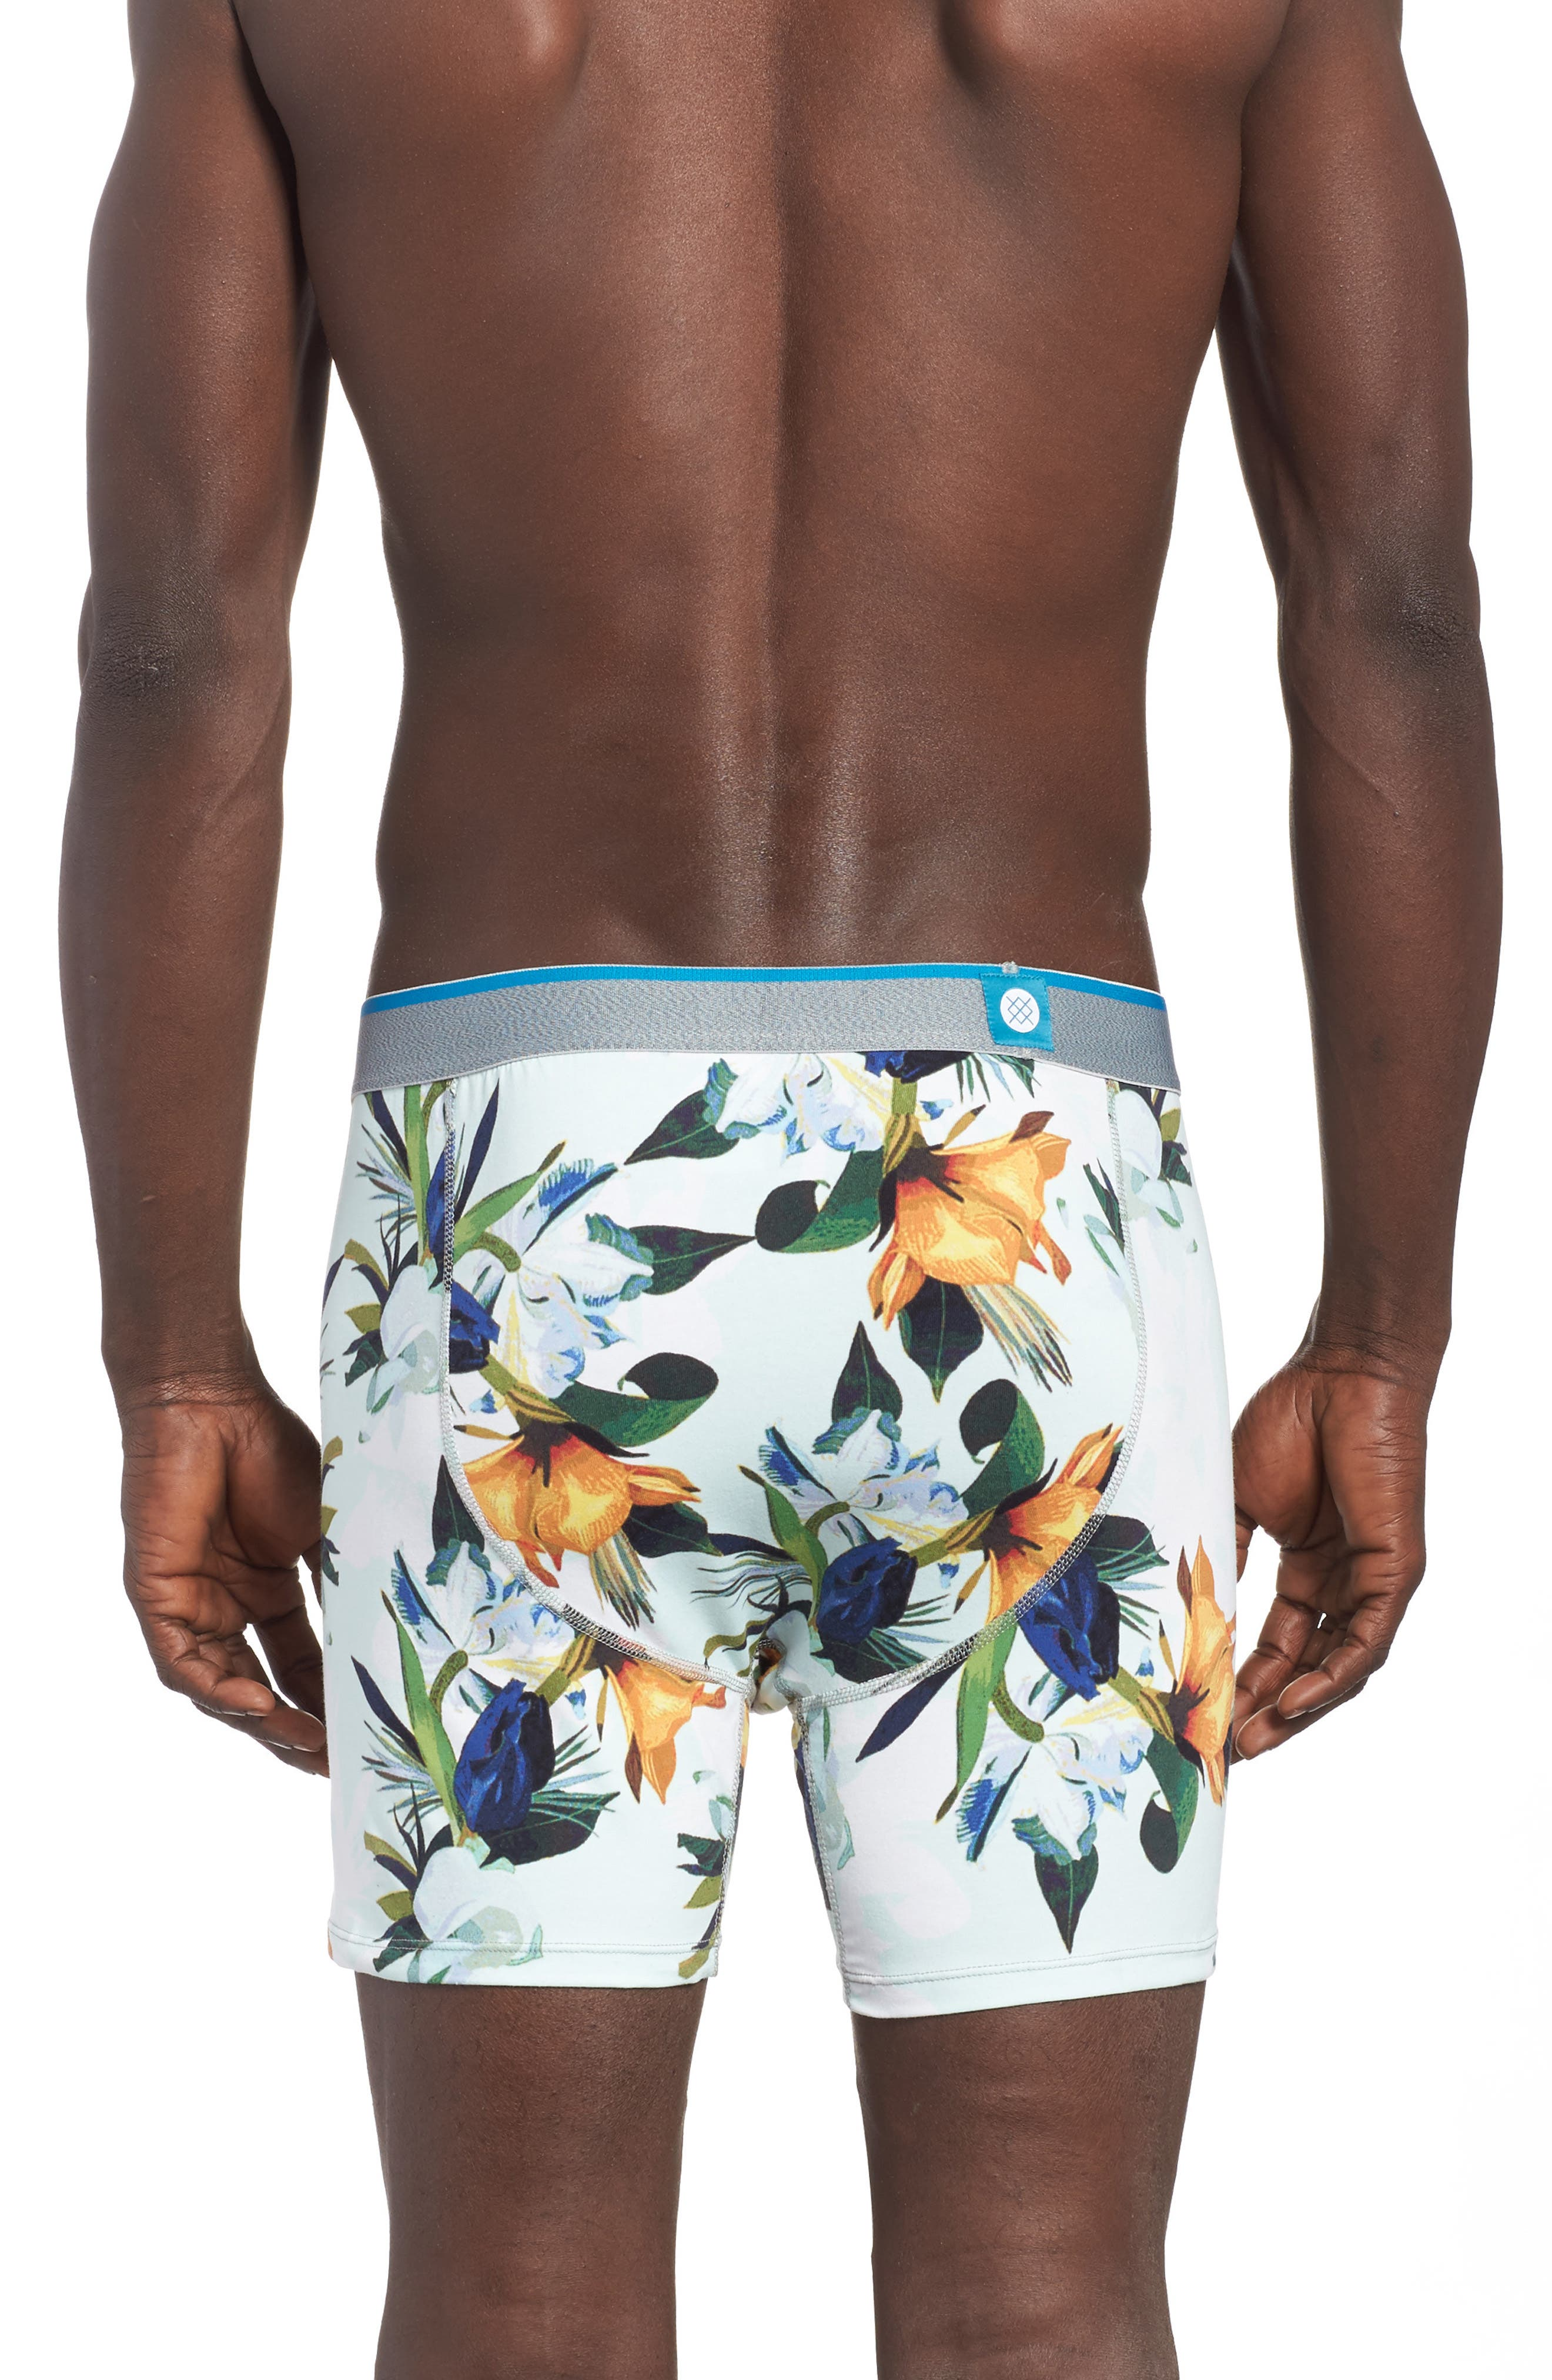 Aqua Floral Boxer Briefs,                             Alternate thumbnail 2, color,                             Medium Blue